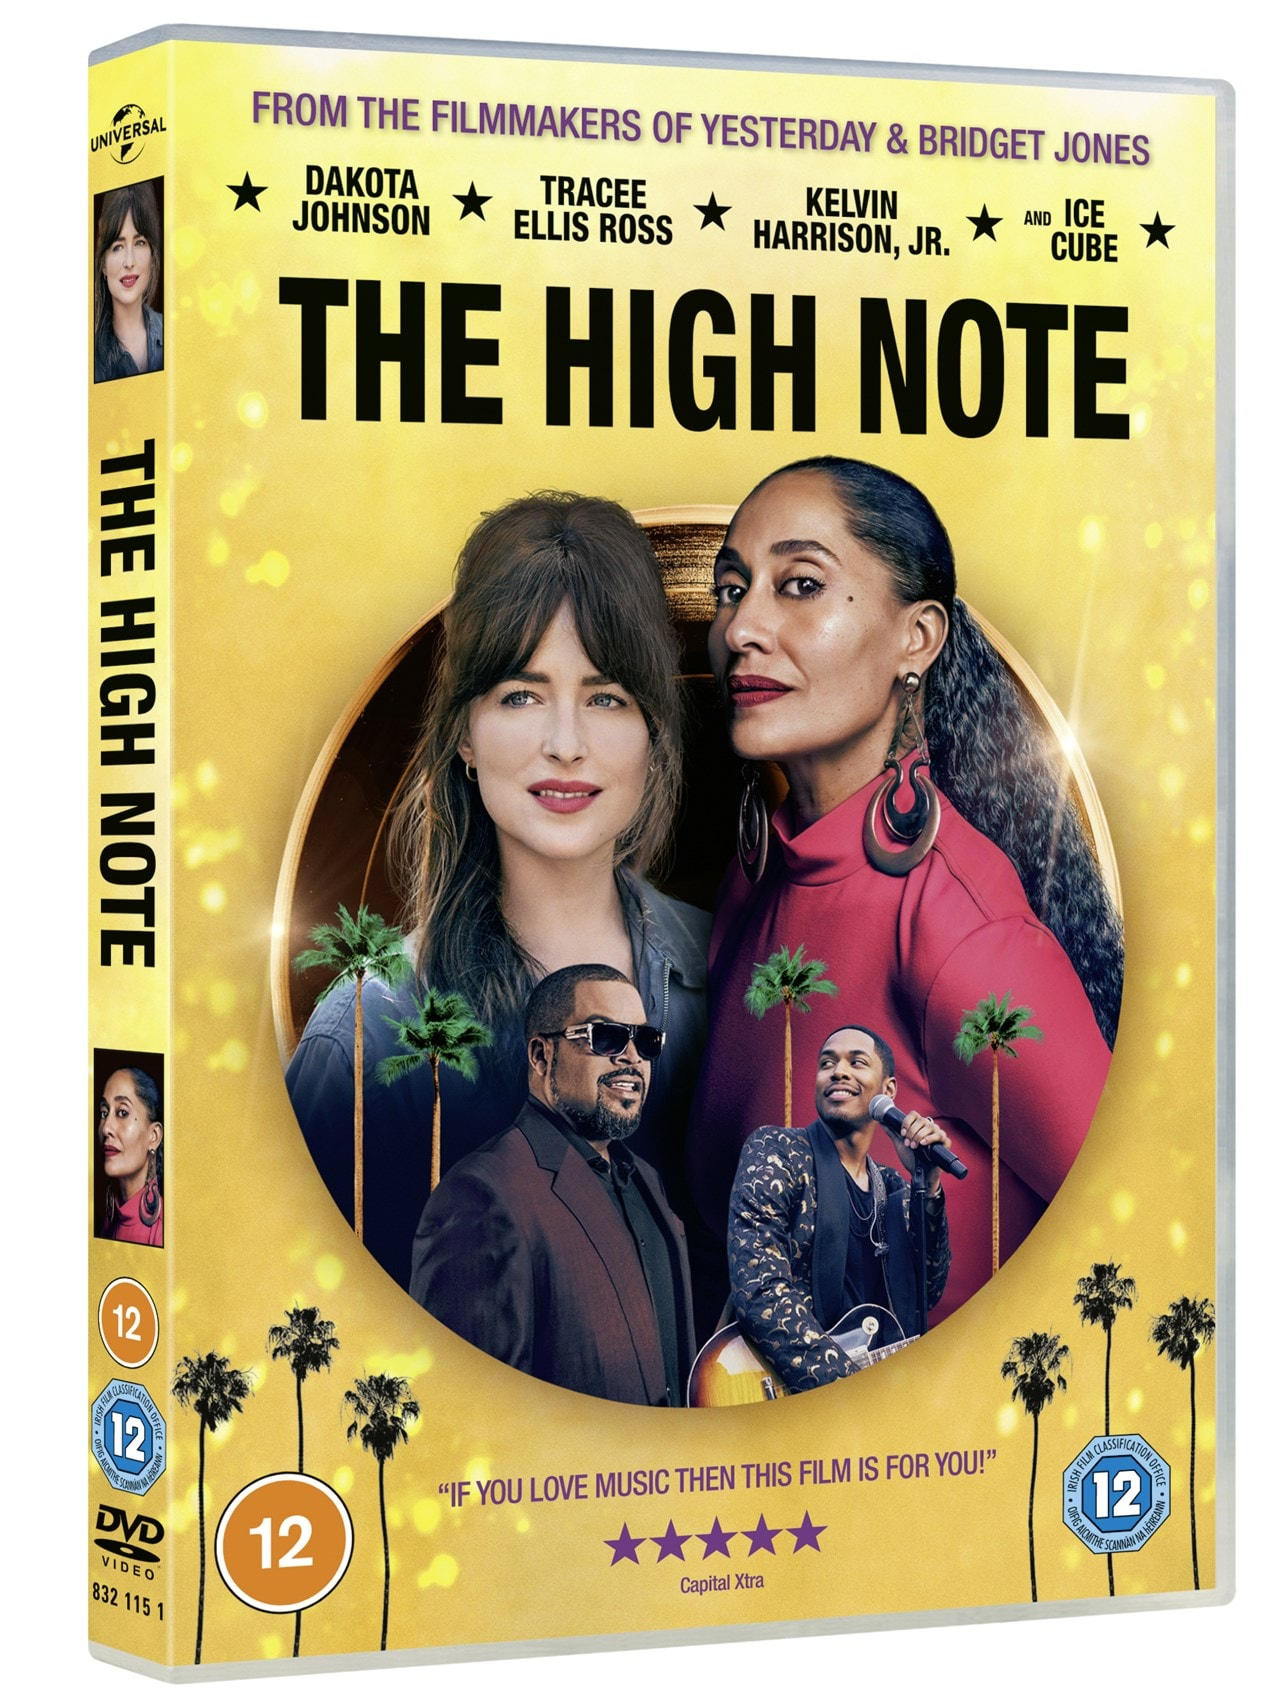 The High Note - 2